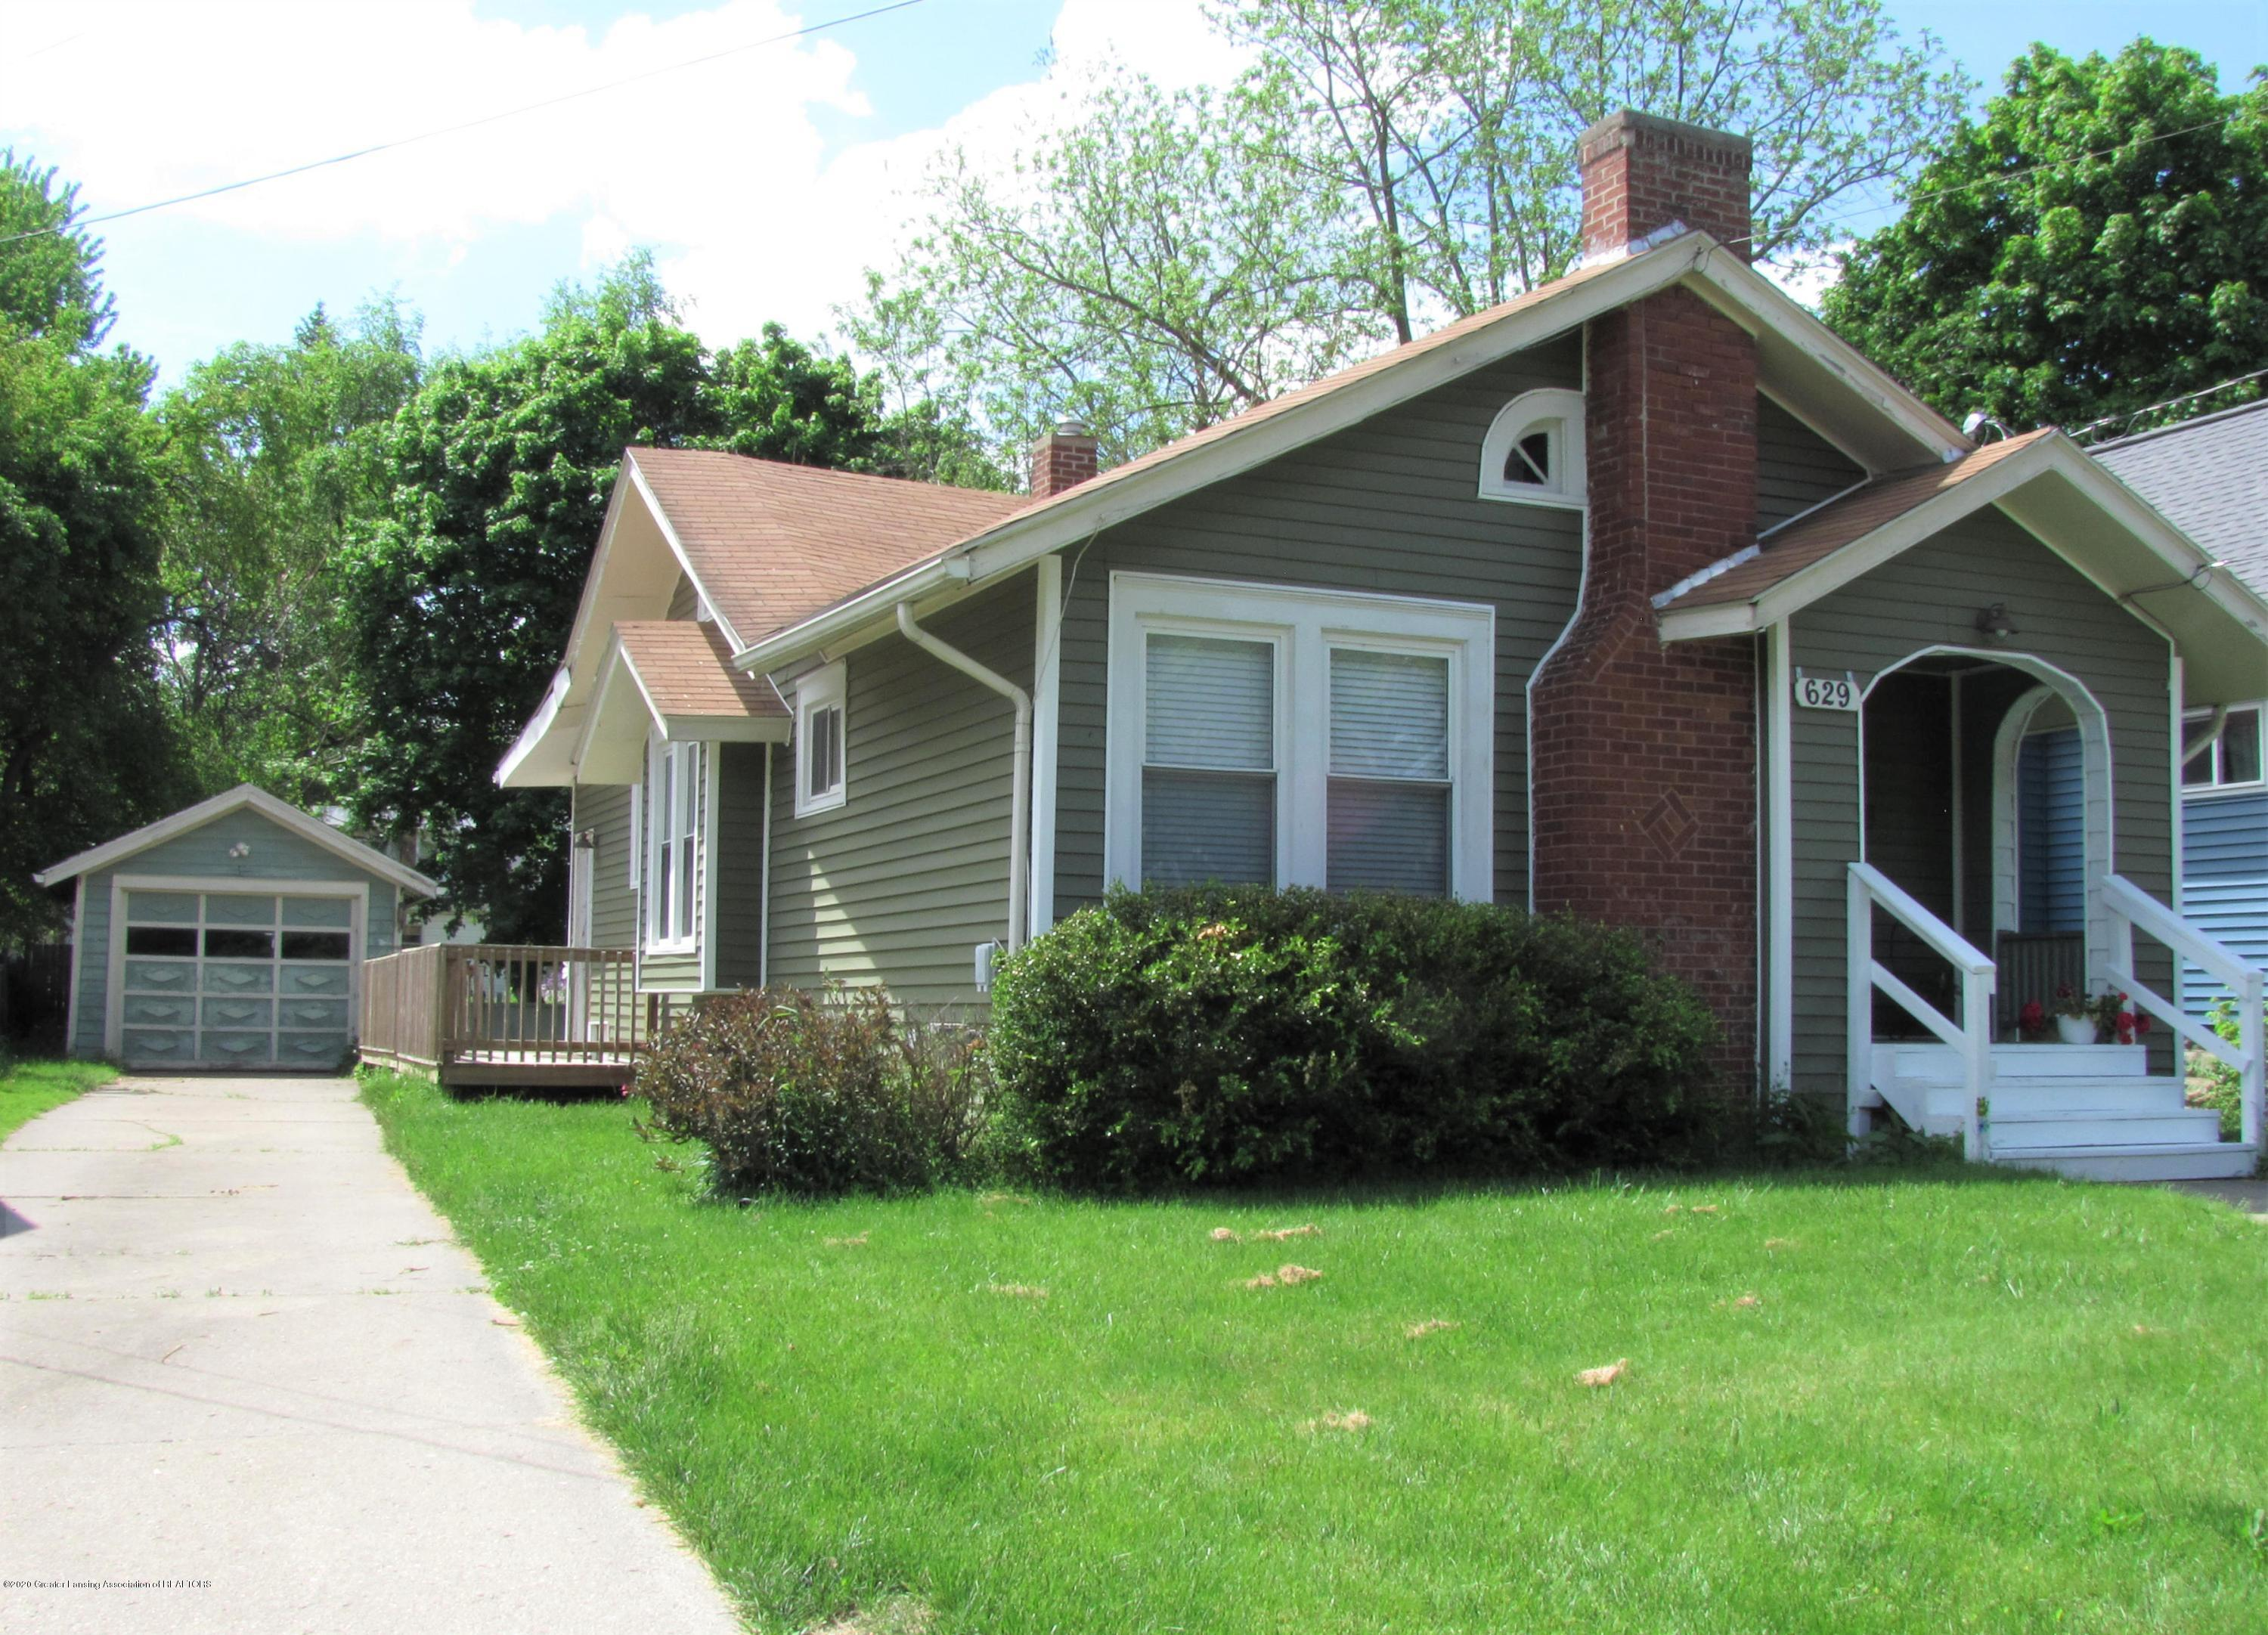 629 N Fairview Ave - Front - 1